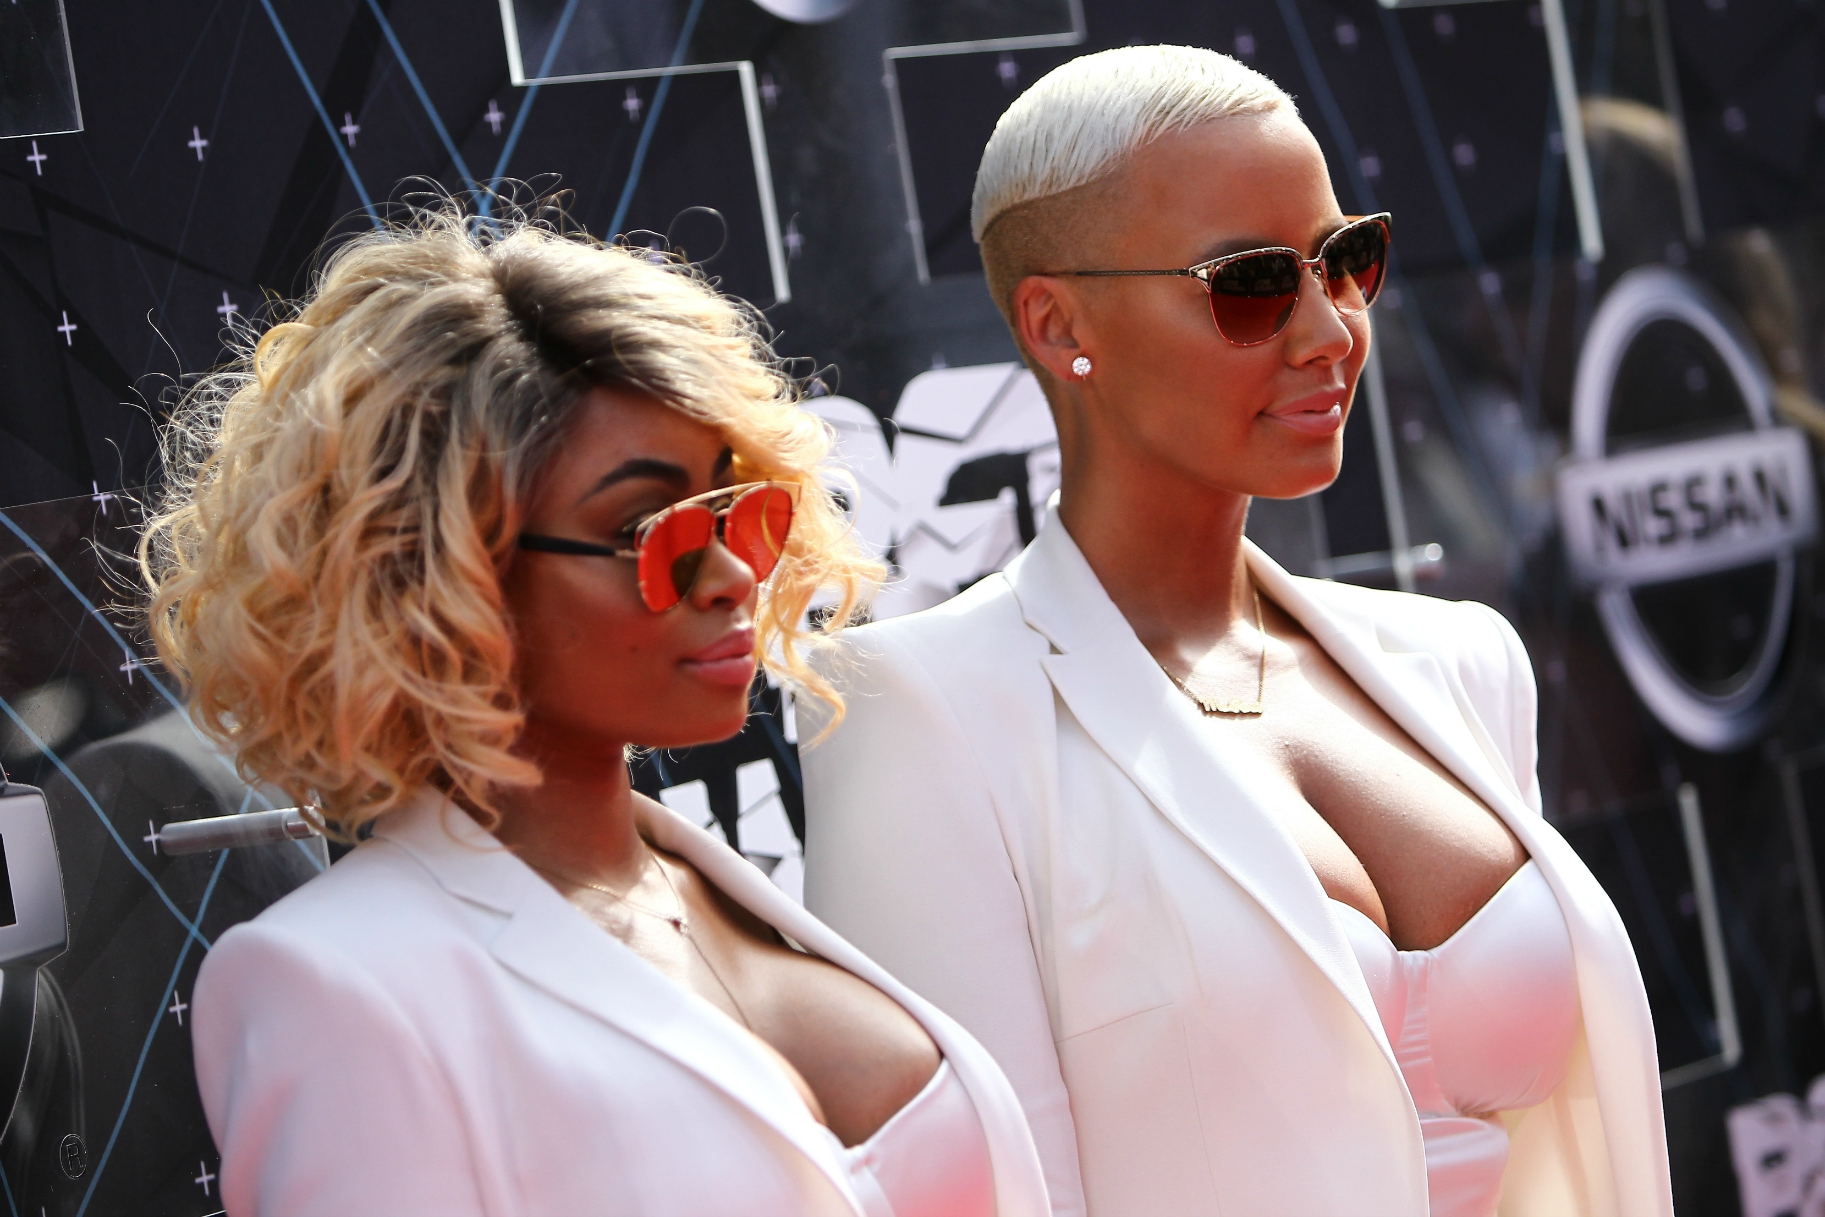 amber_rose_and_blac_chyna